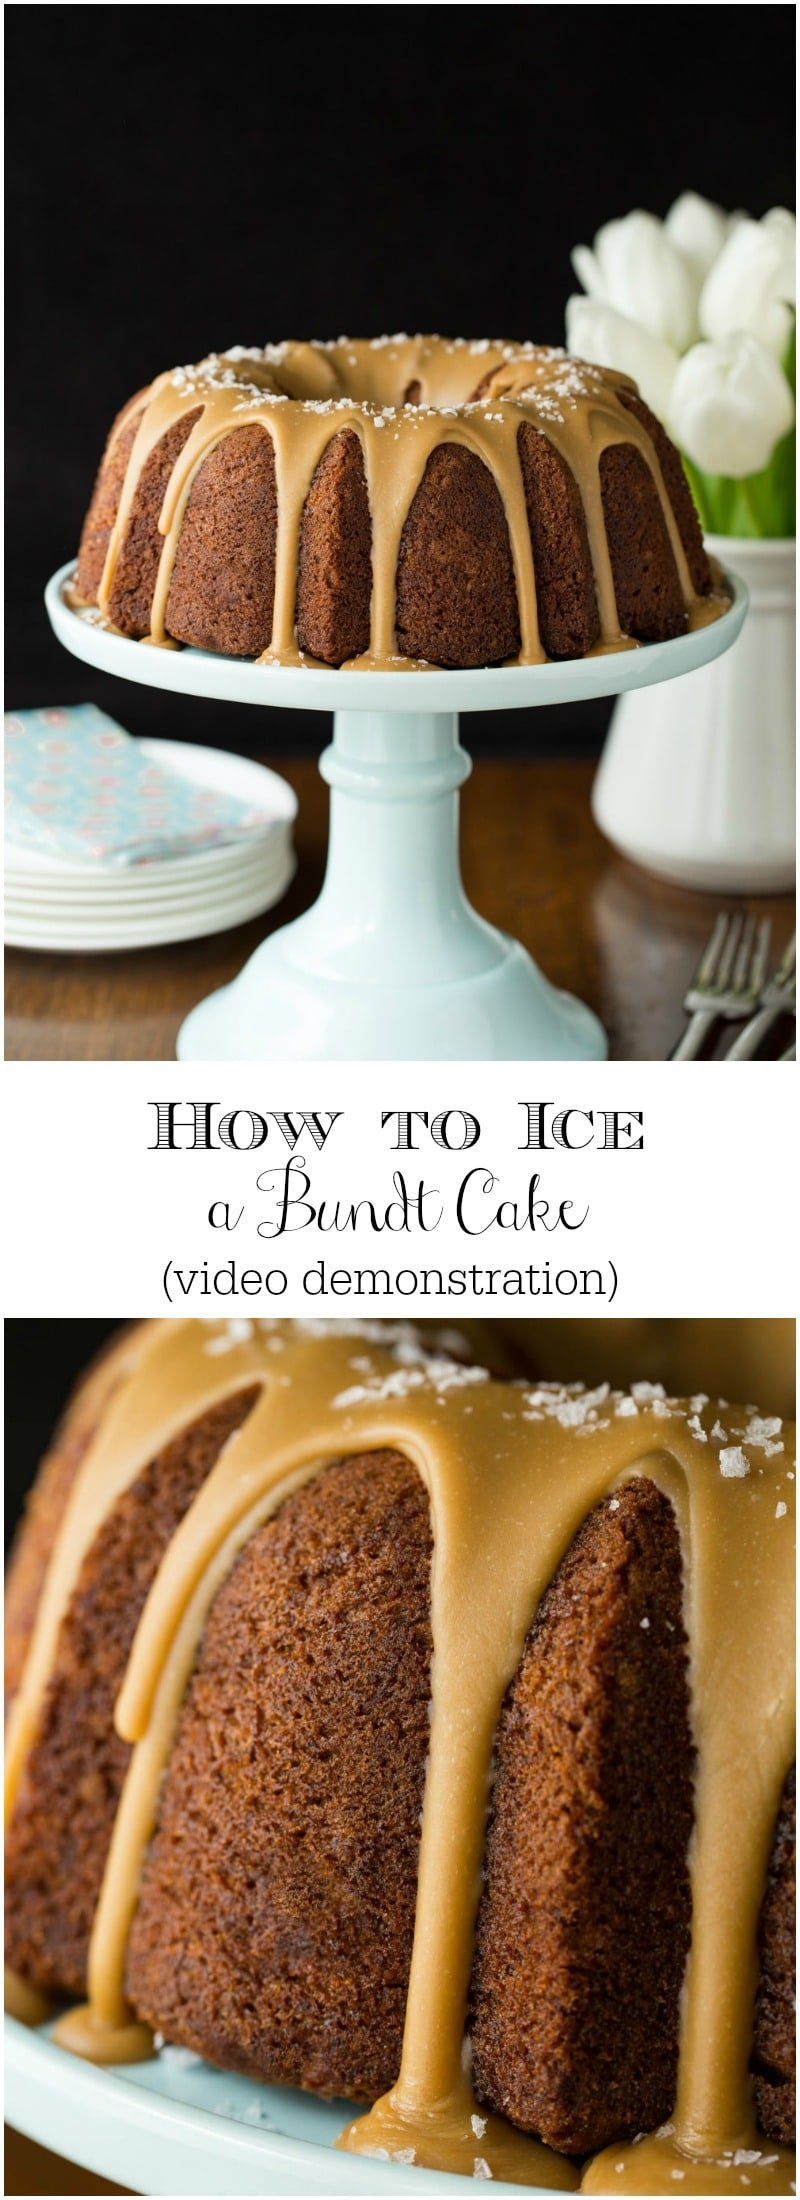 How to Ice a Bundt Cake - an Easy and Beautiful Technique! Make your Bundt cakes look as pretty as they taste - with minimal effort!